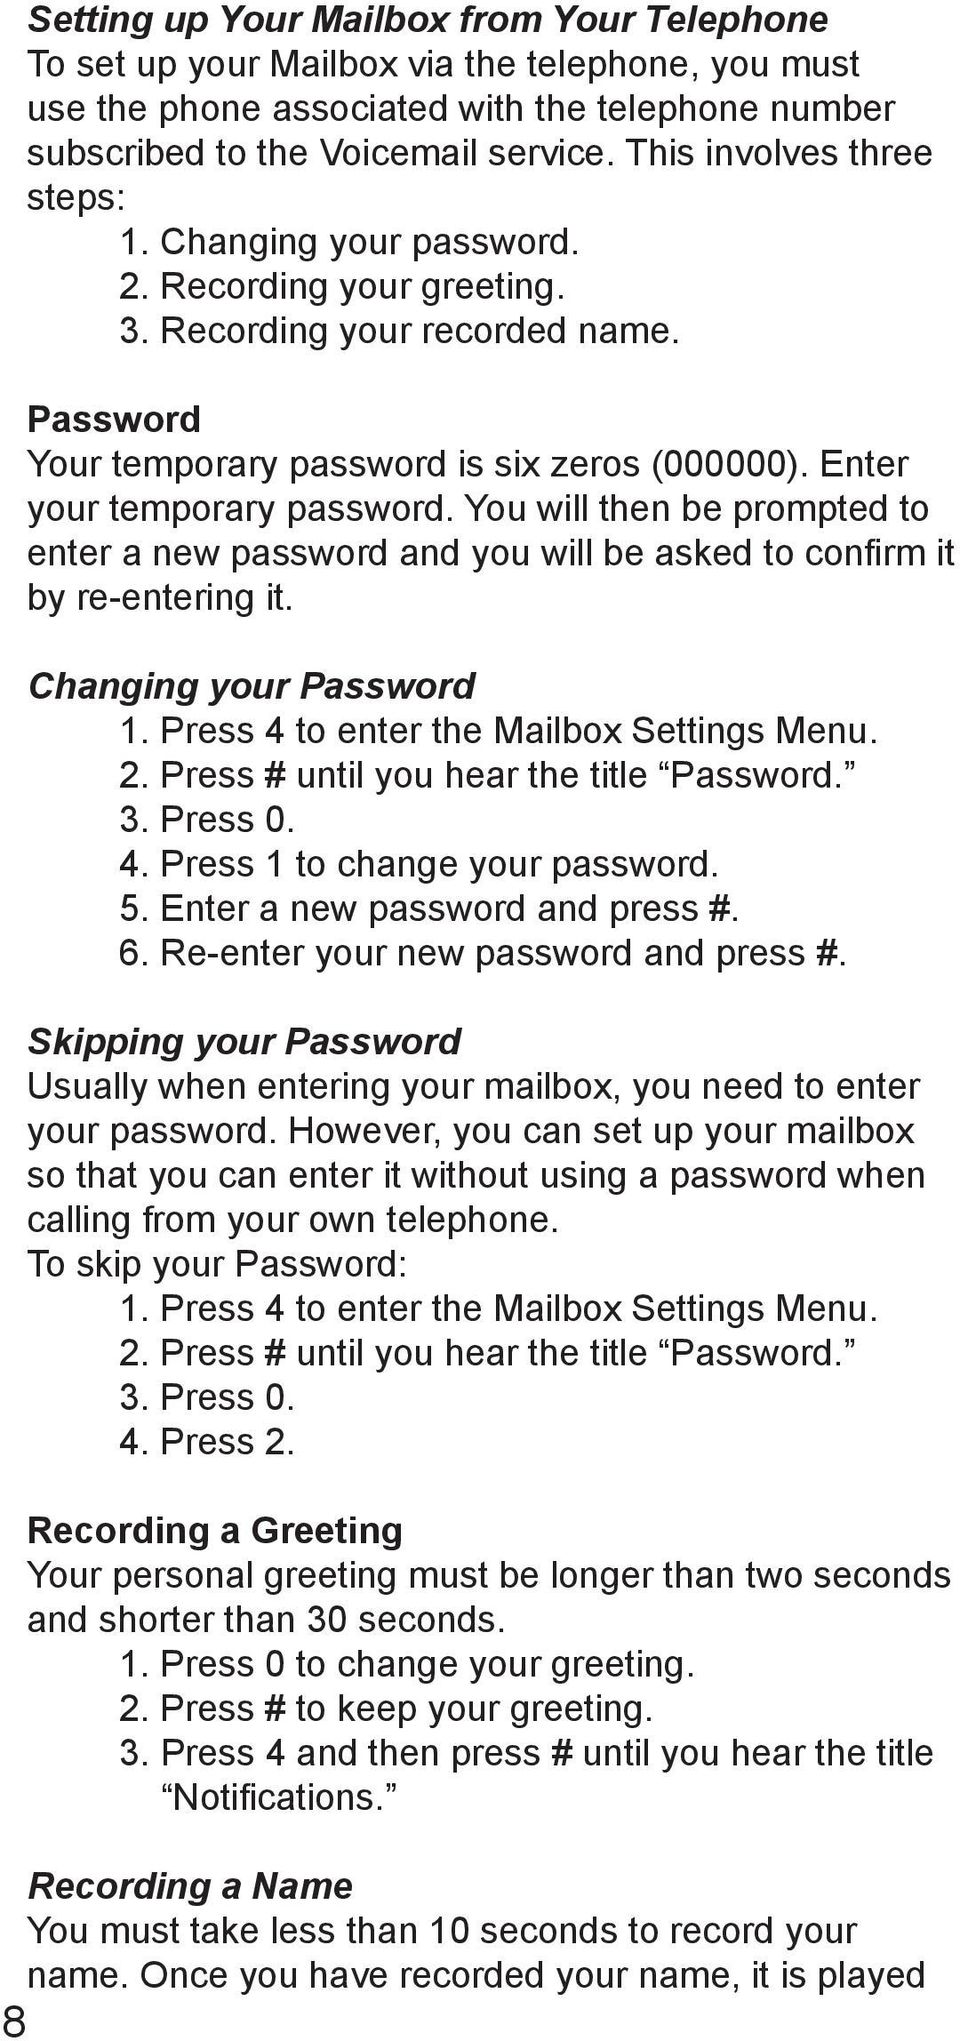 Enter your temporary password. You will then be prompted to enter a new password and you will be asked to confirm it by re-entering it. Changing your Password 1.